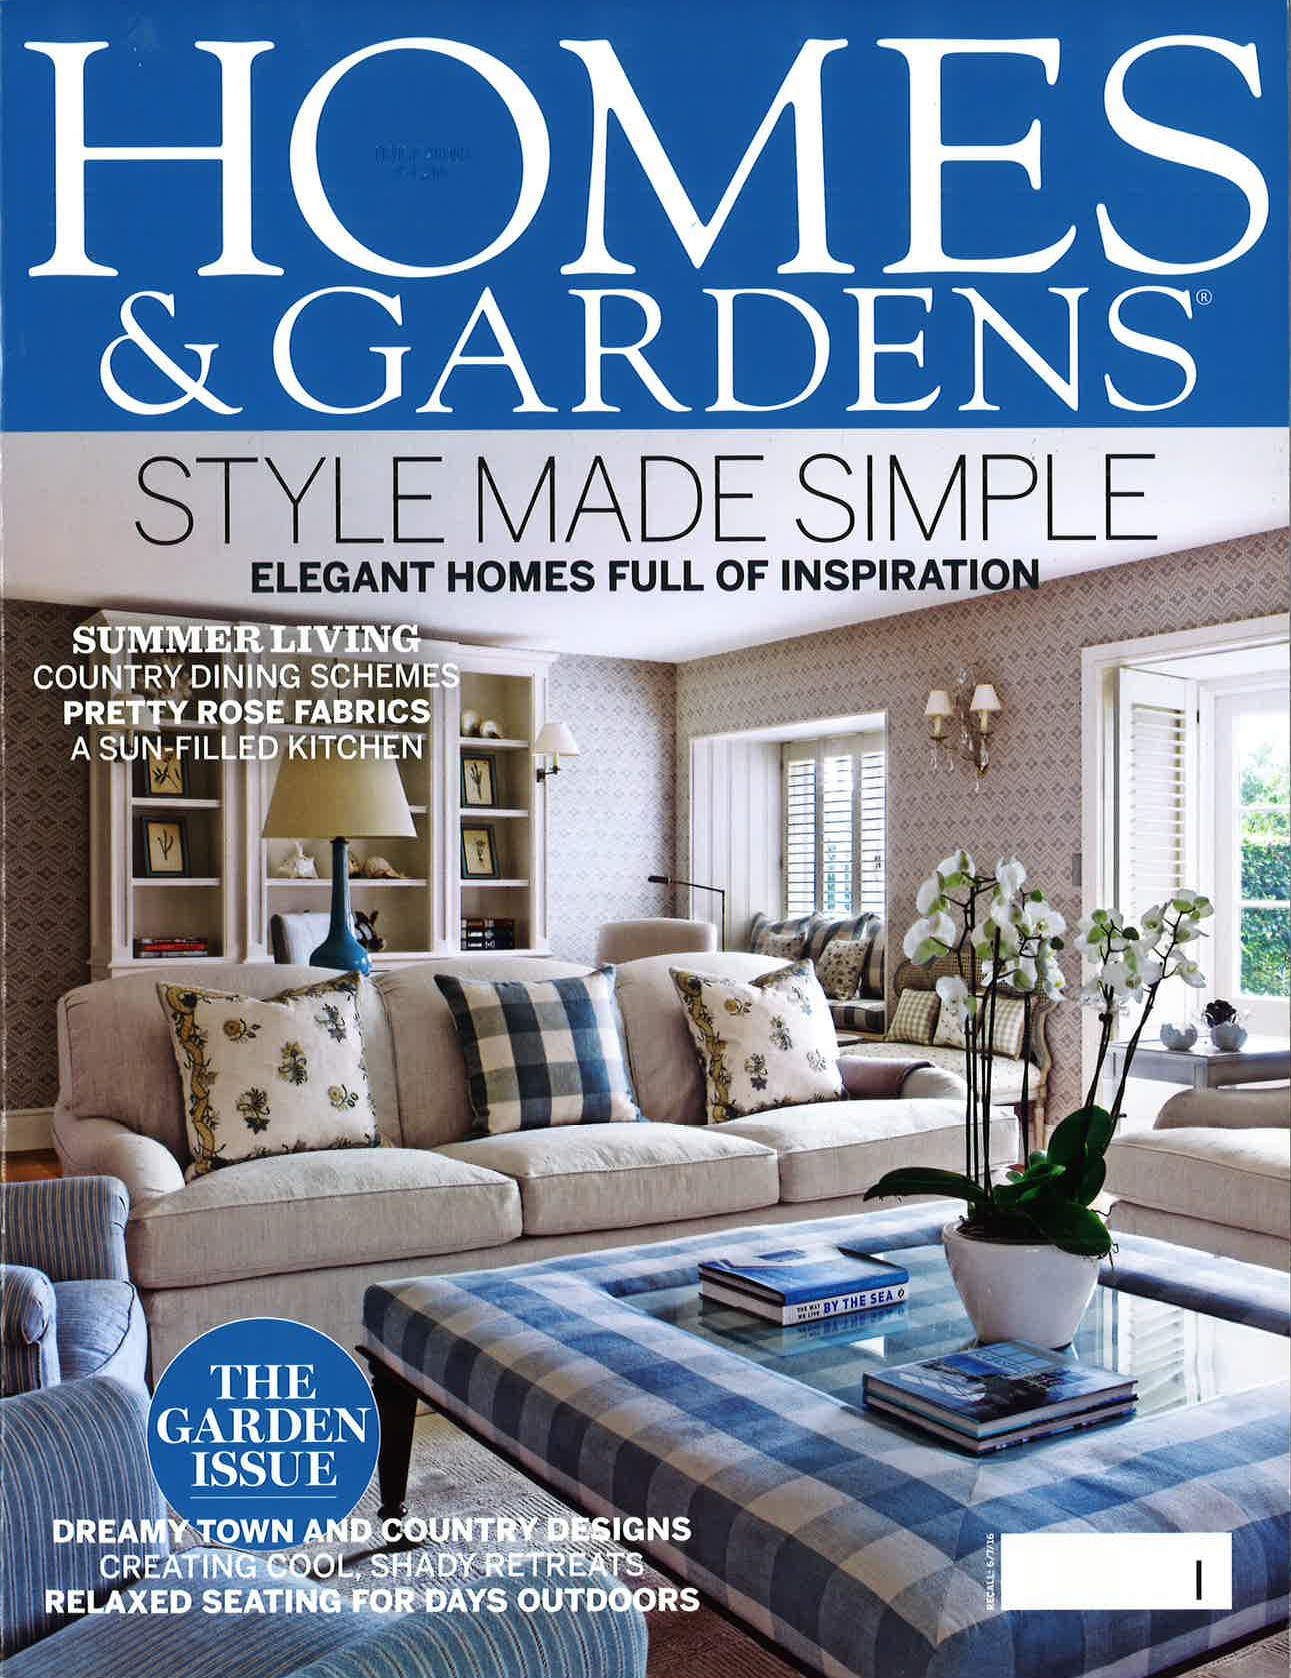 Home and Gardens July 2016 cover .jpg